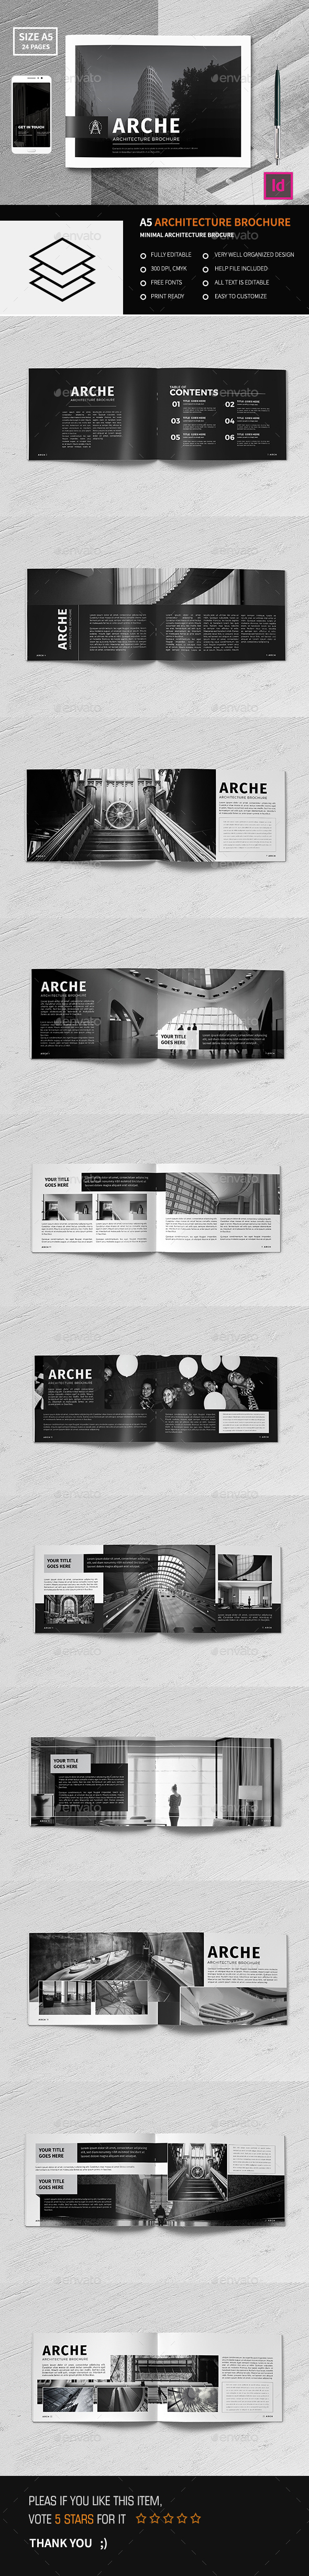 A5 Architecture Brochure - Corporate Brochures